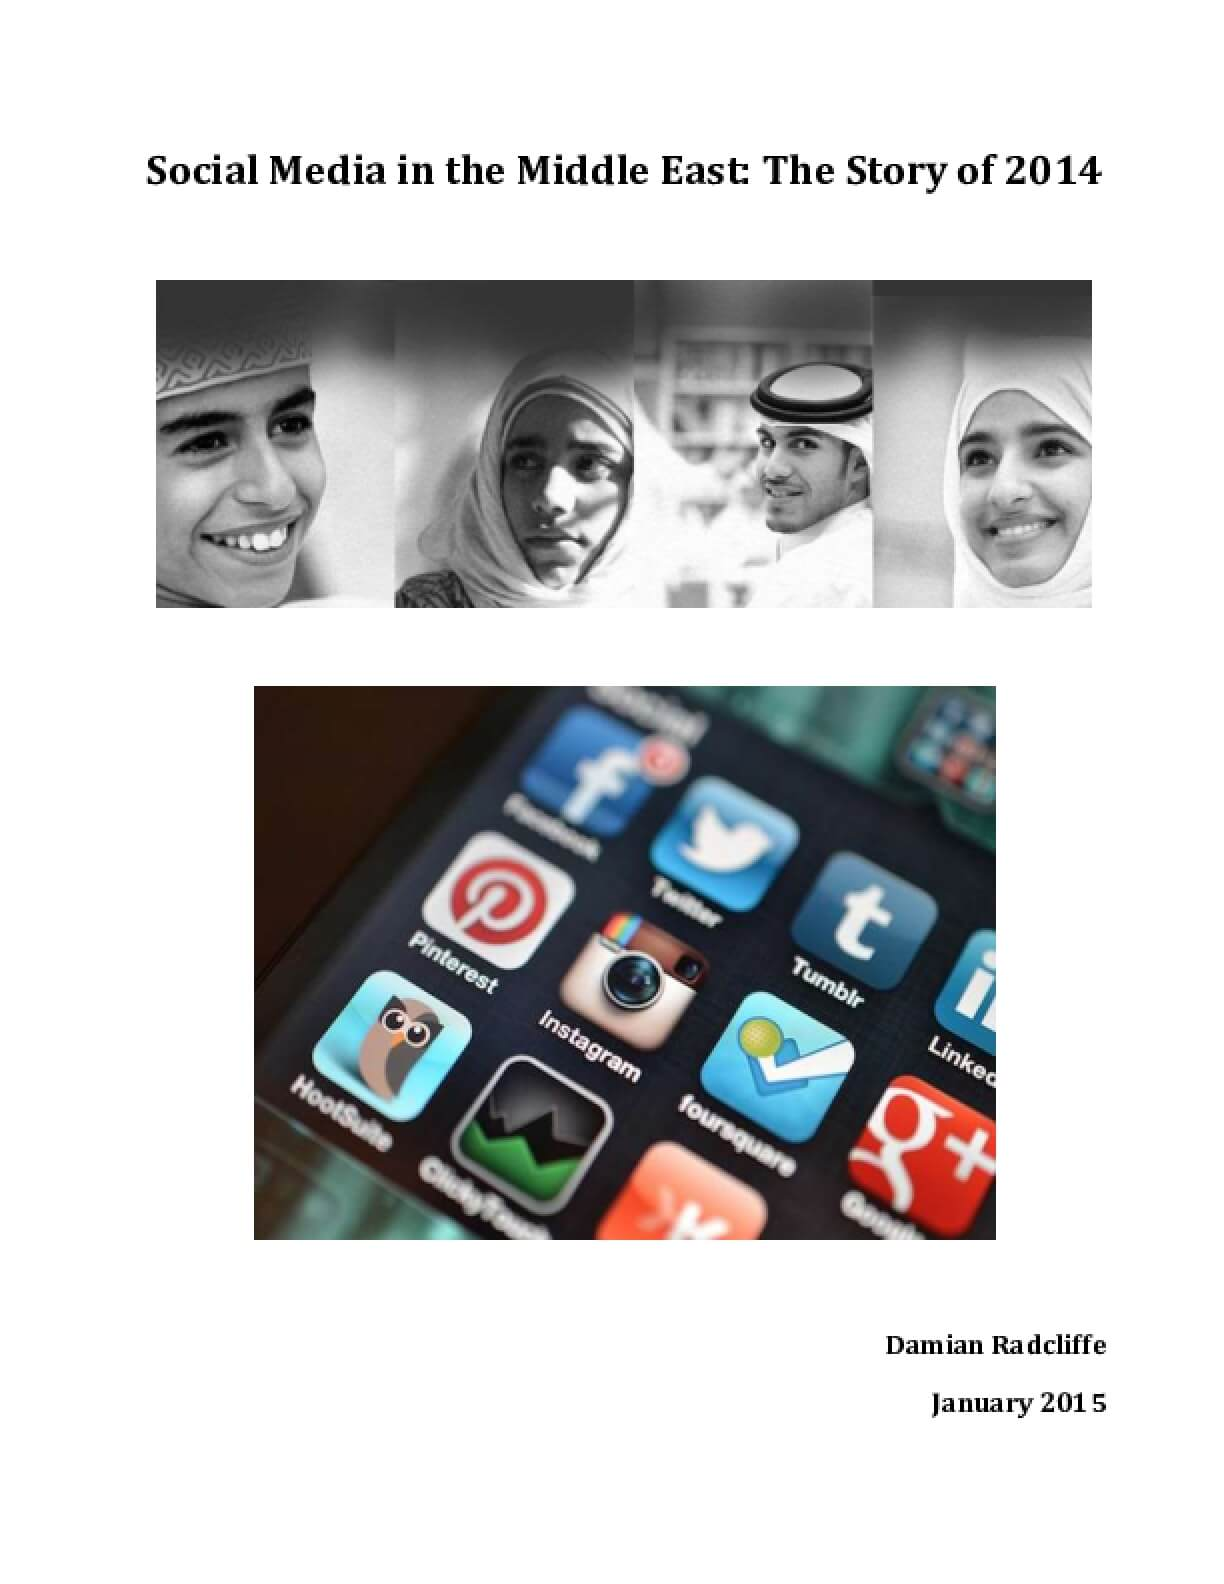 Social Media in the Middle East: The Story of 2014